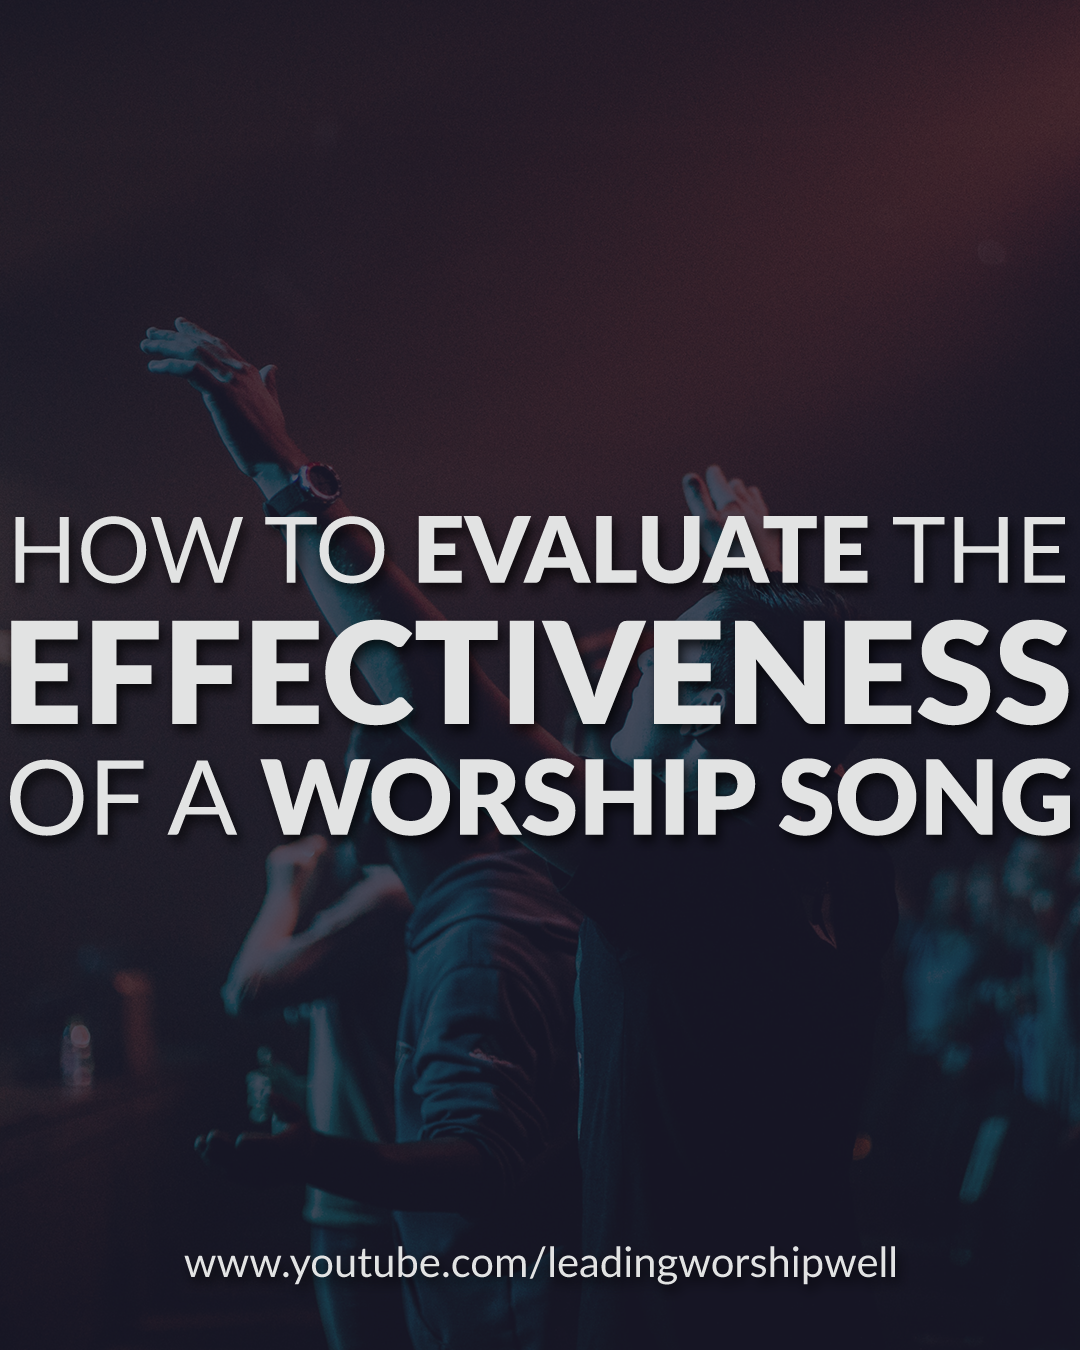 How To Evaluate The Effectiveness Of A Worship Song (Video)